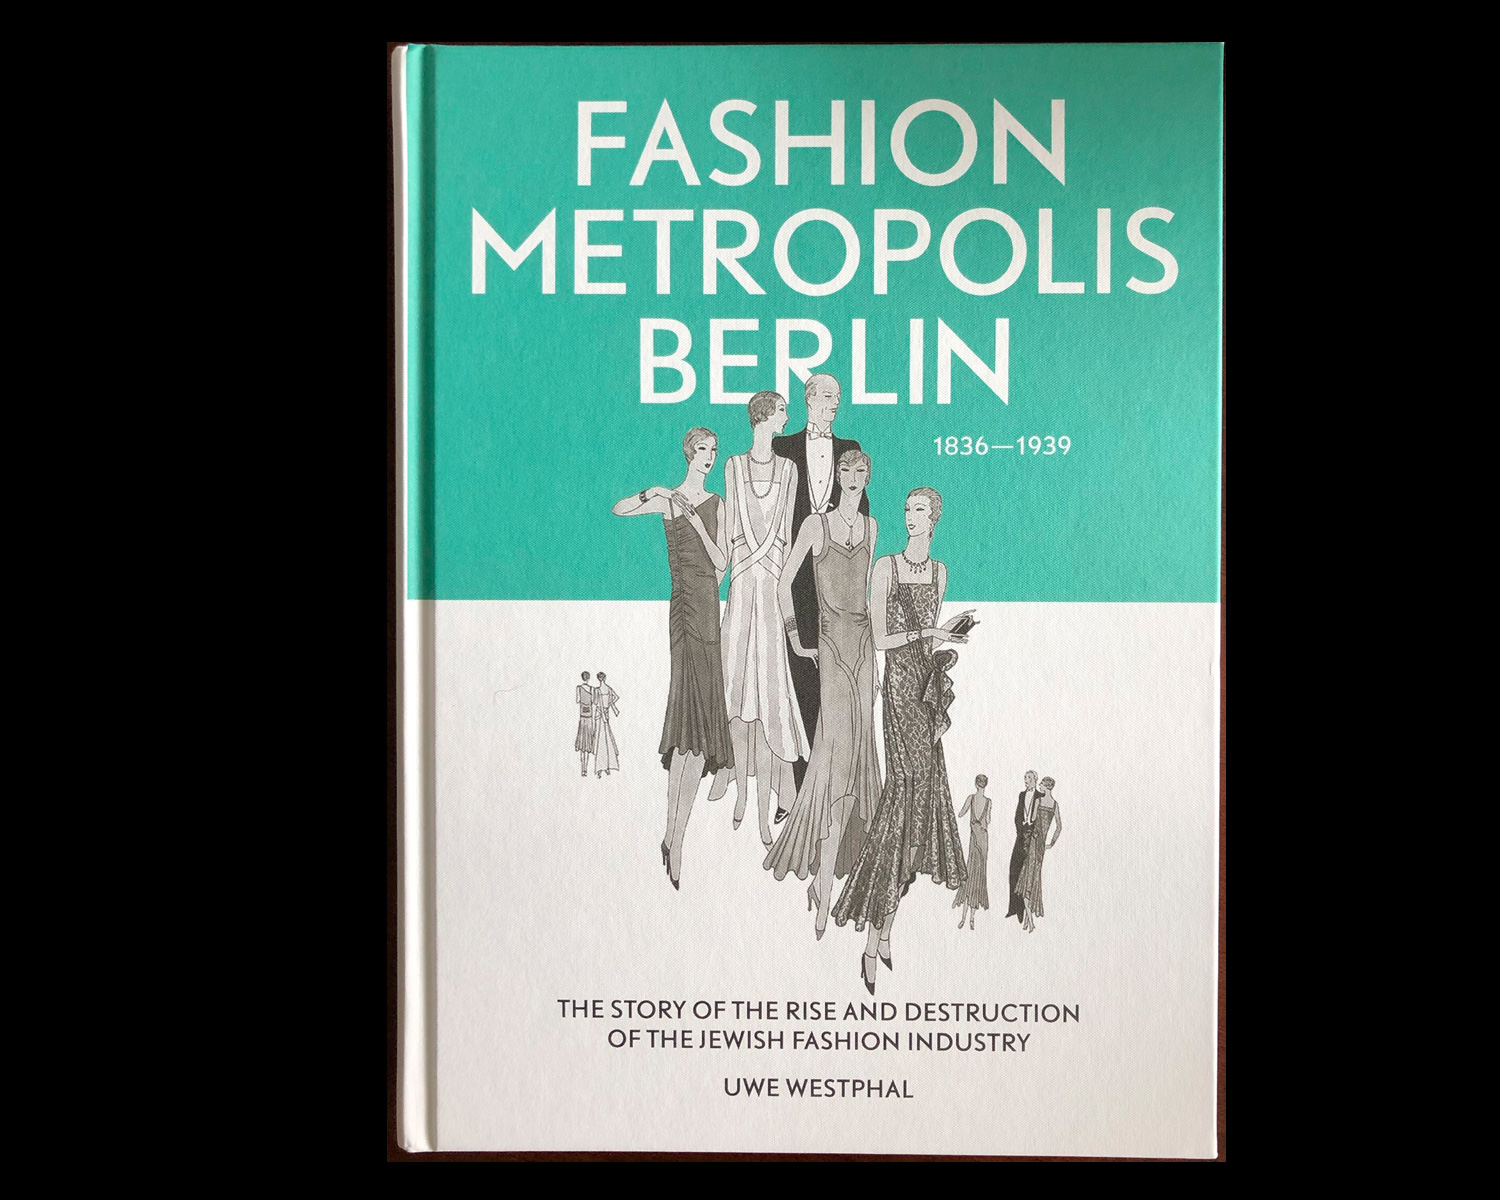 The Story of the Rise and Destruction of the Jewish Fashion Industry by Uwe Westphal